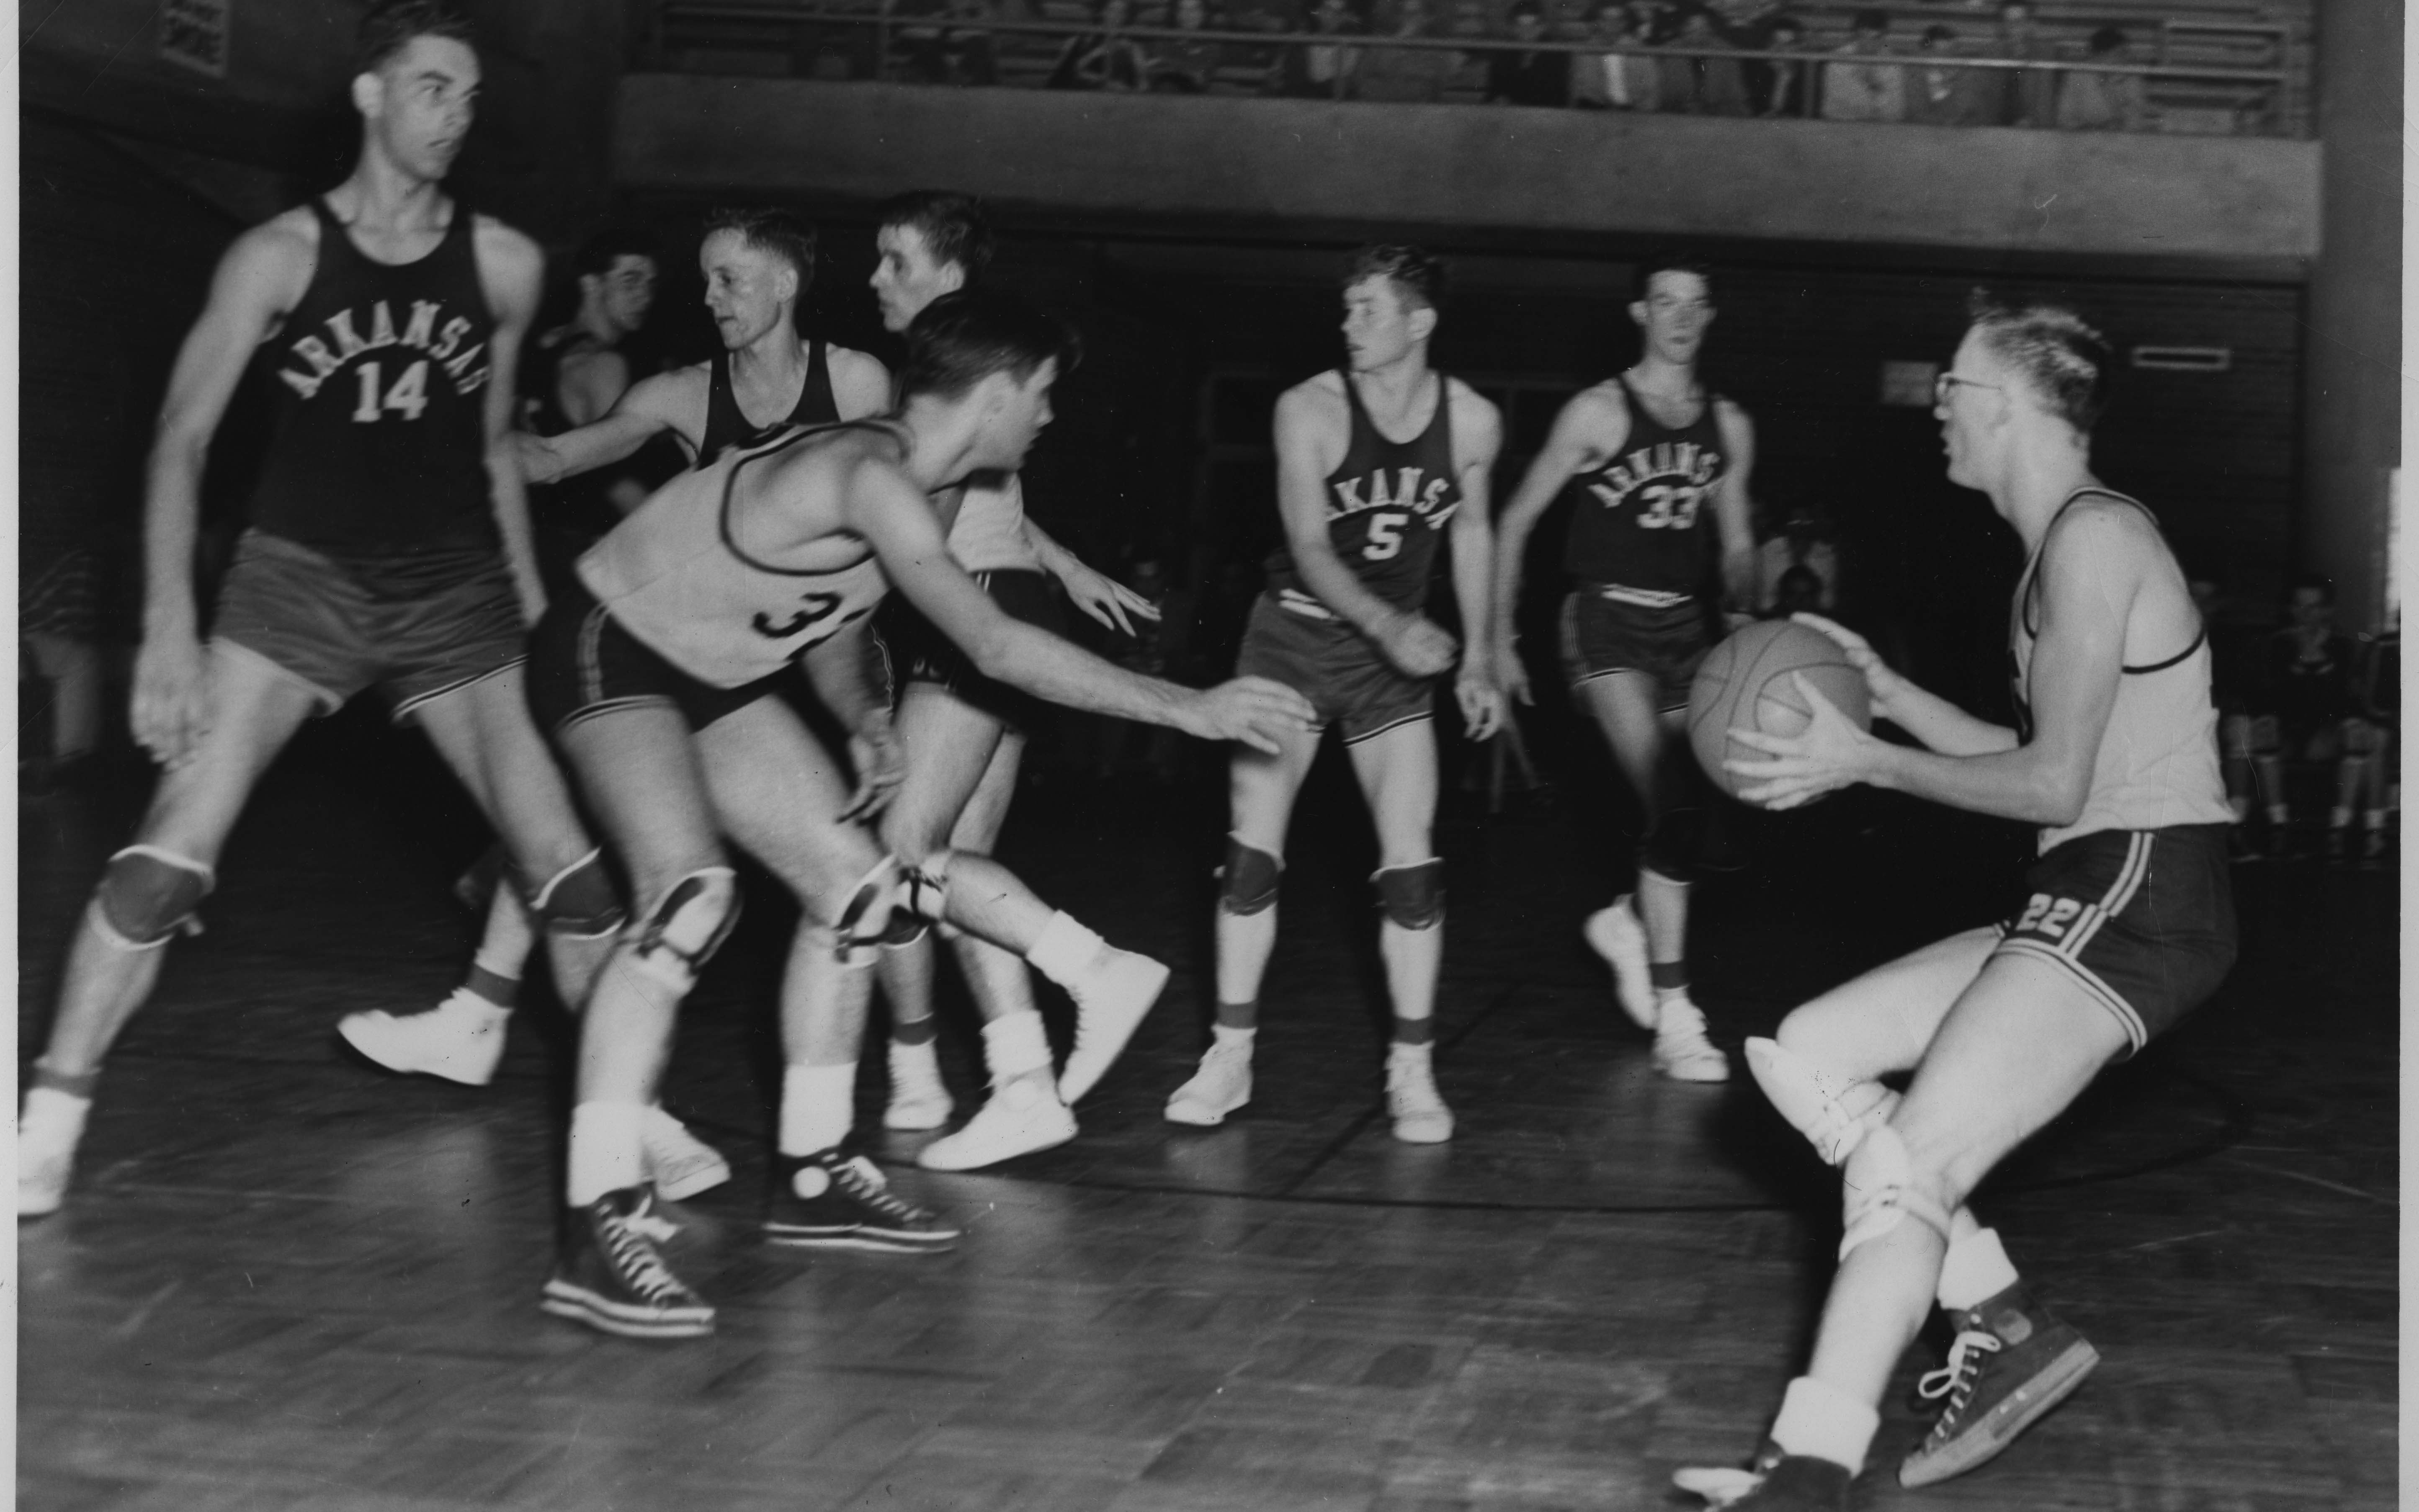 The Trojan basketball team from Little Rock Junior College competes in a game in 1950. (Courtesy of UA Little Rock Center for Arkansas History and Culture)